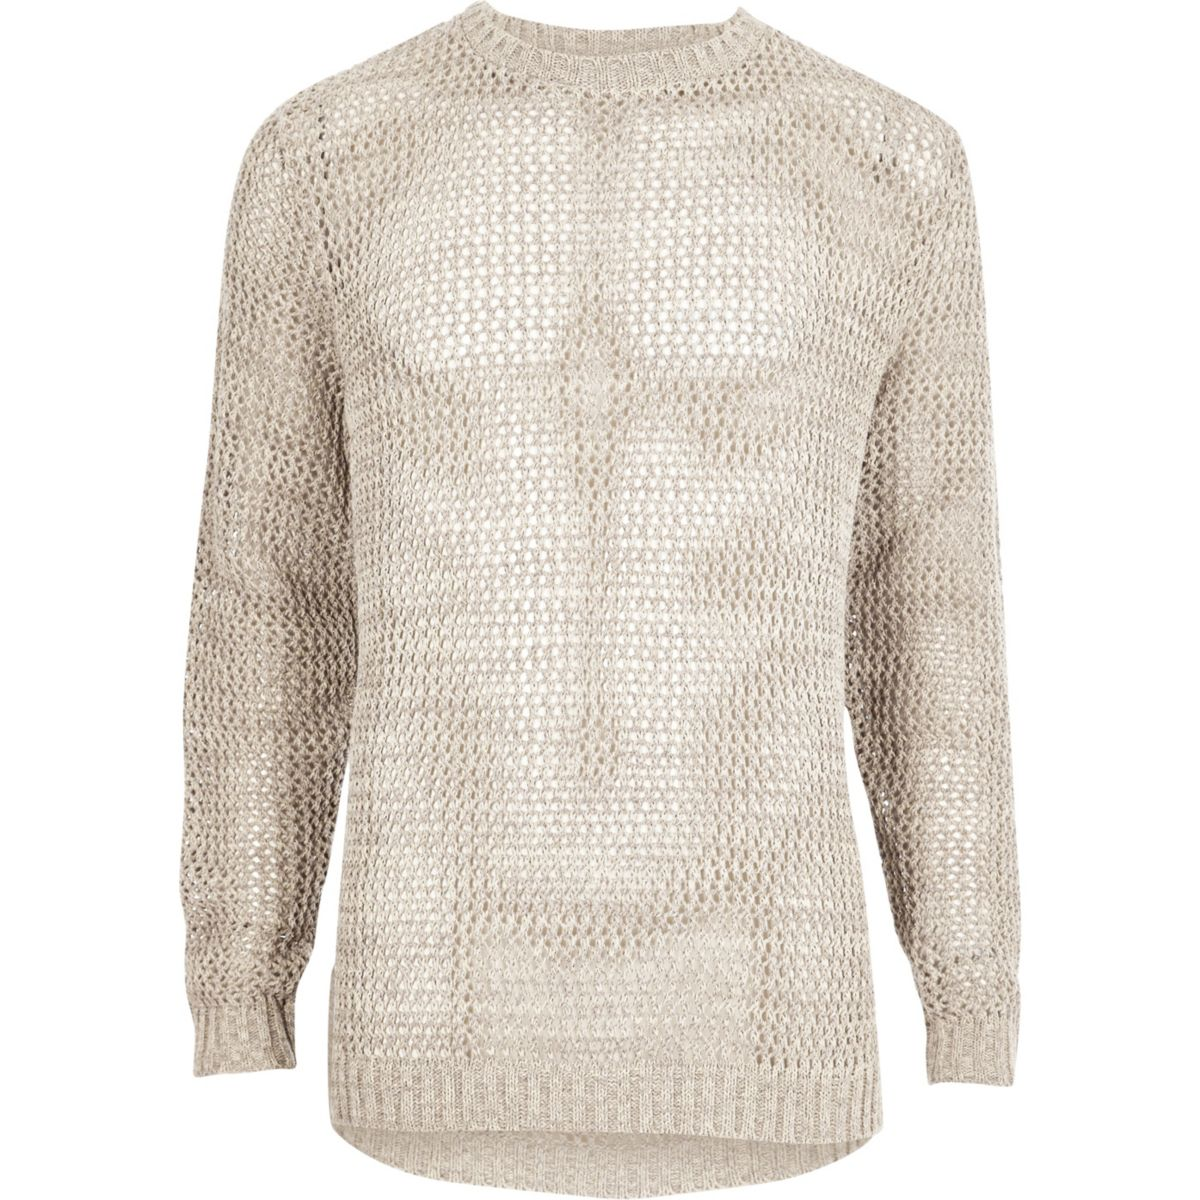 Stone mesh knit slim fit sweater